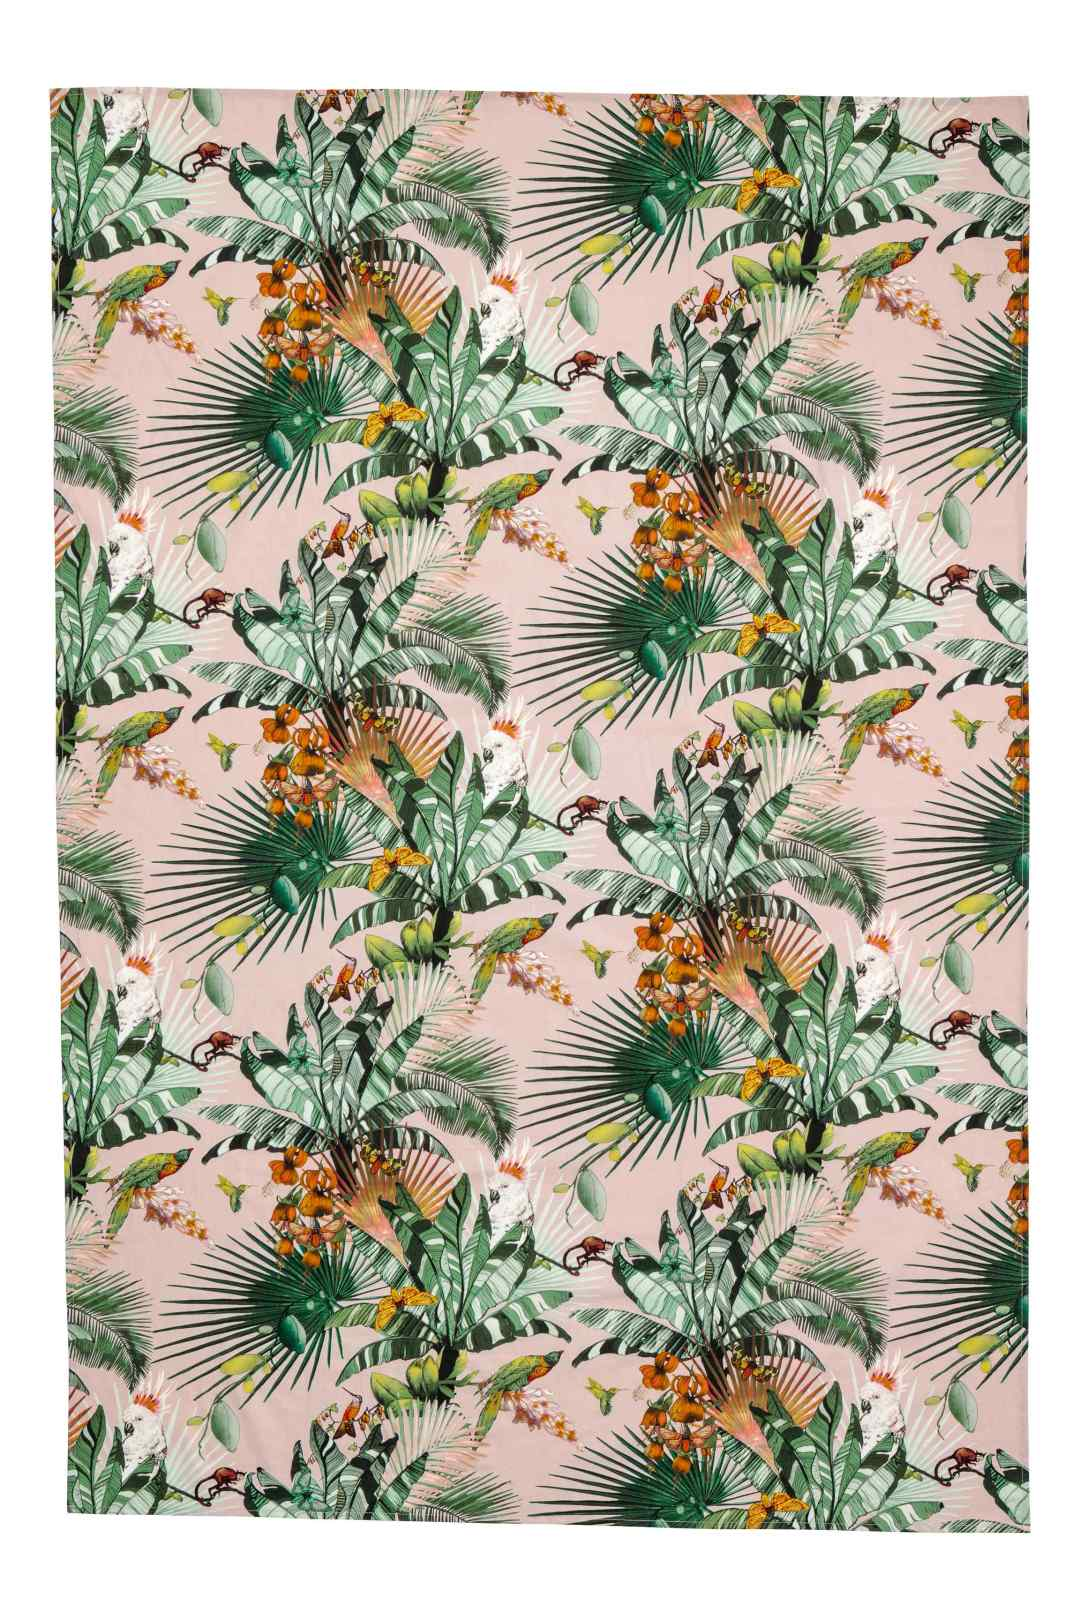 Patterned cotton tablecloth by H&M Home - Tropical kitchen - Transform your home into a tropical paradise | Aliz's Wonderland